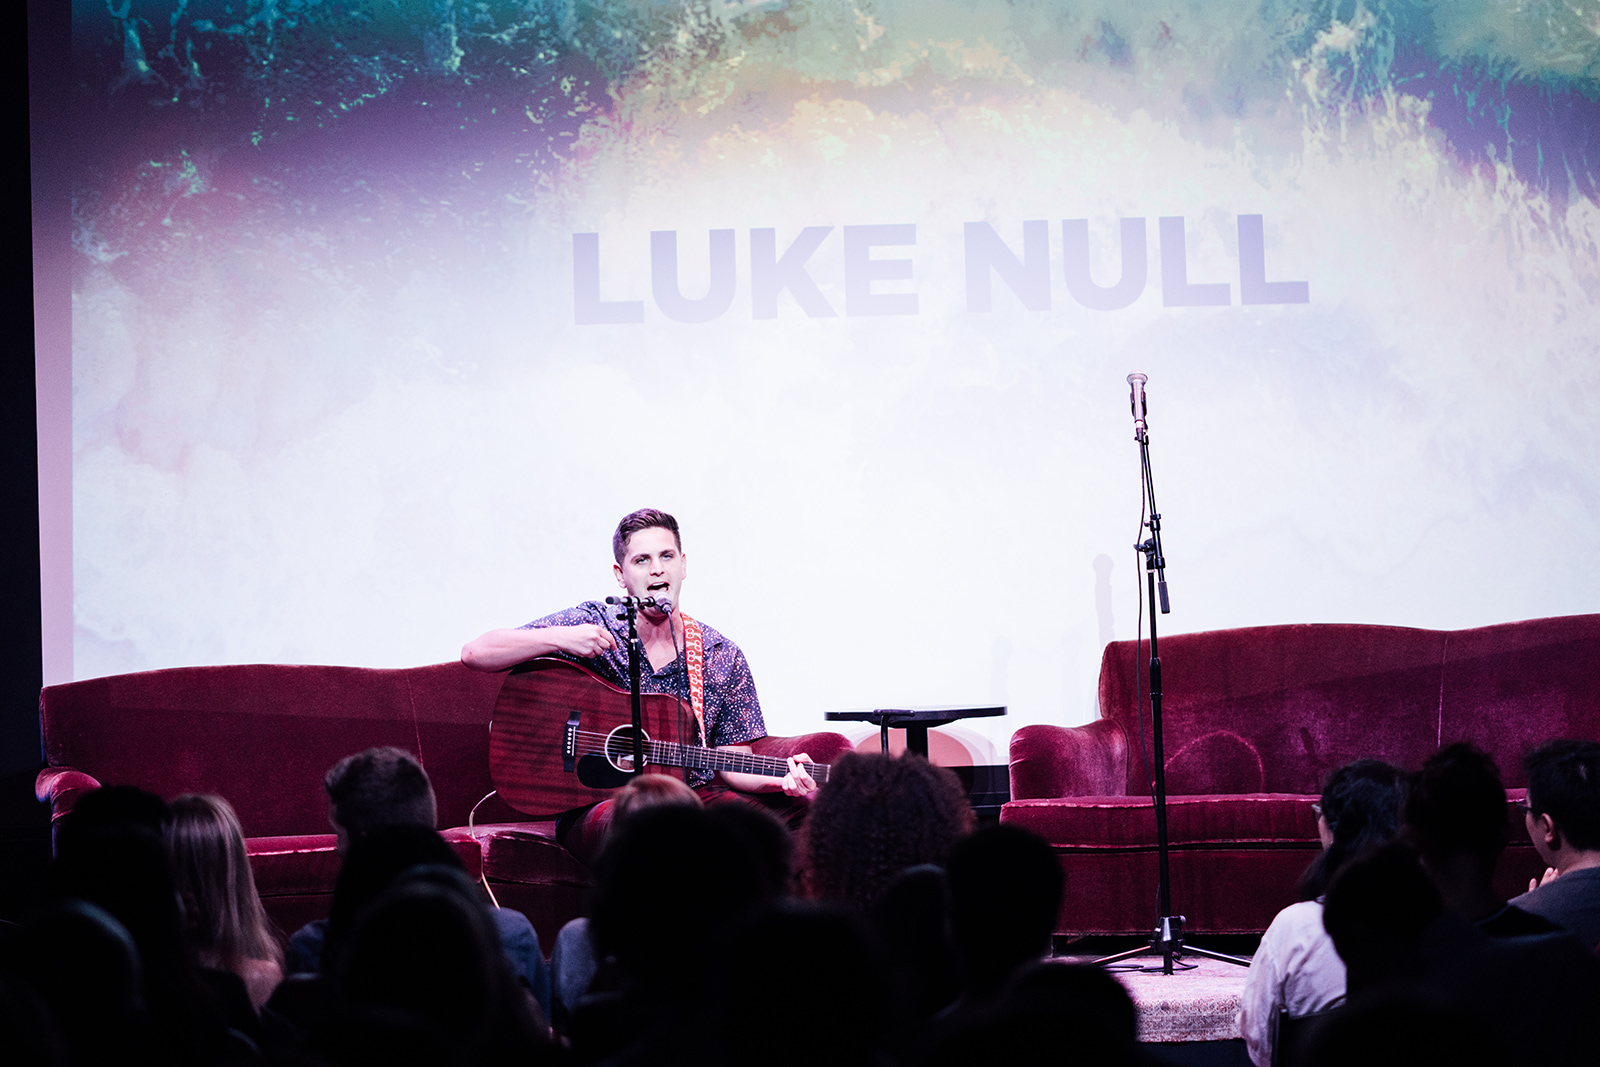 luke-null-the-exhibition2